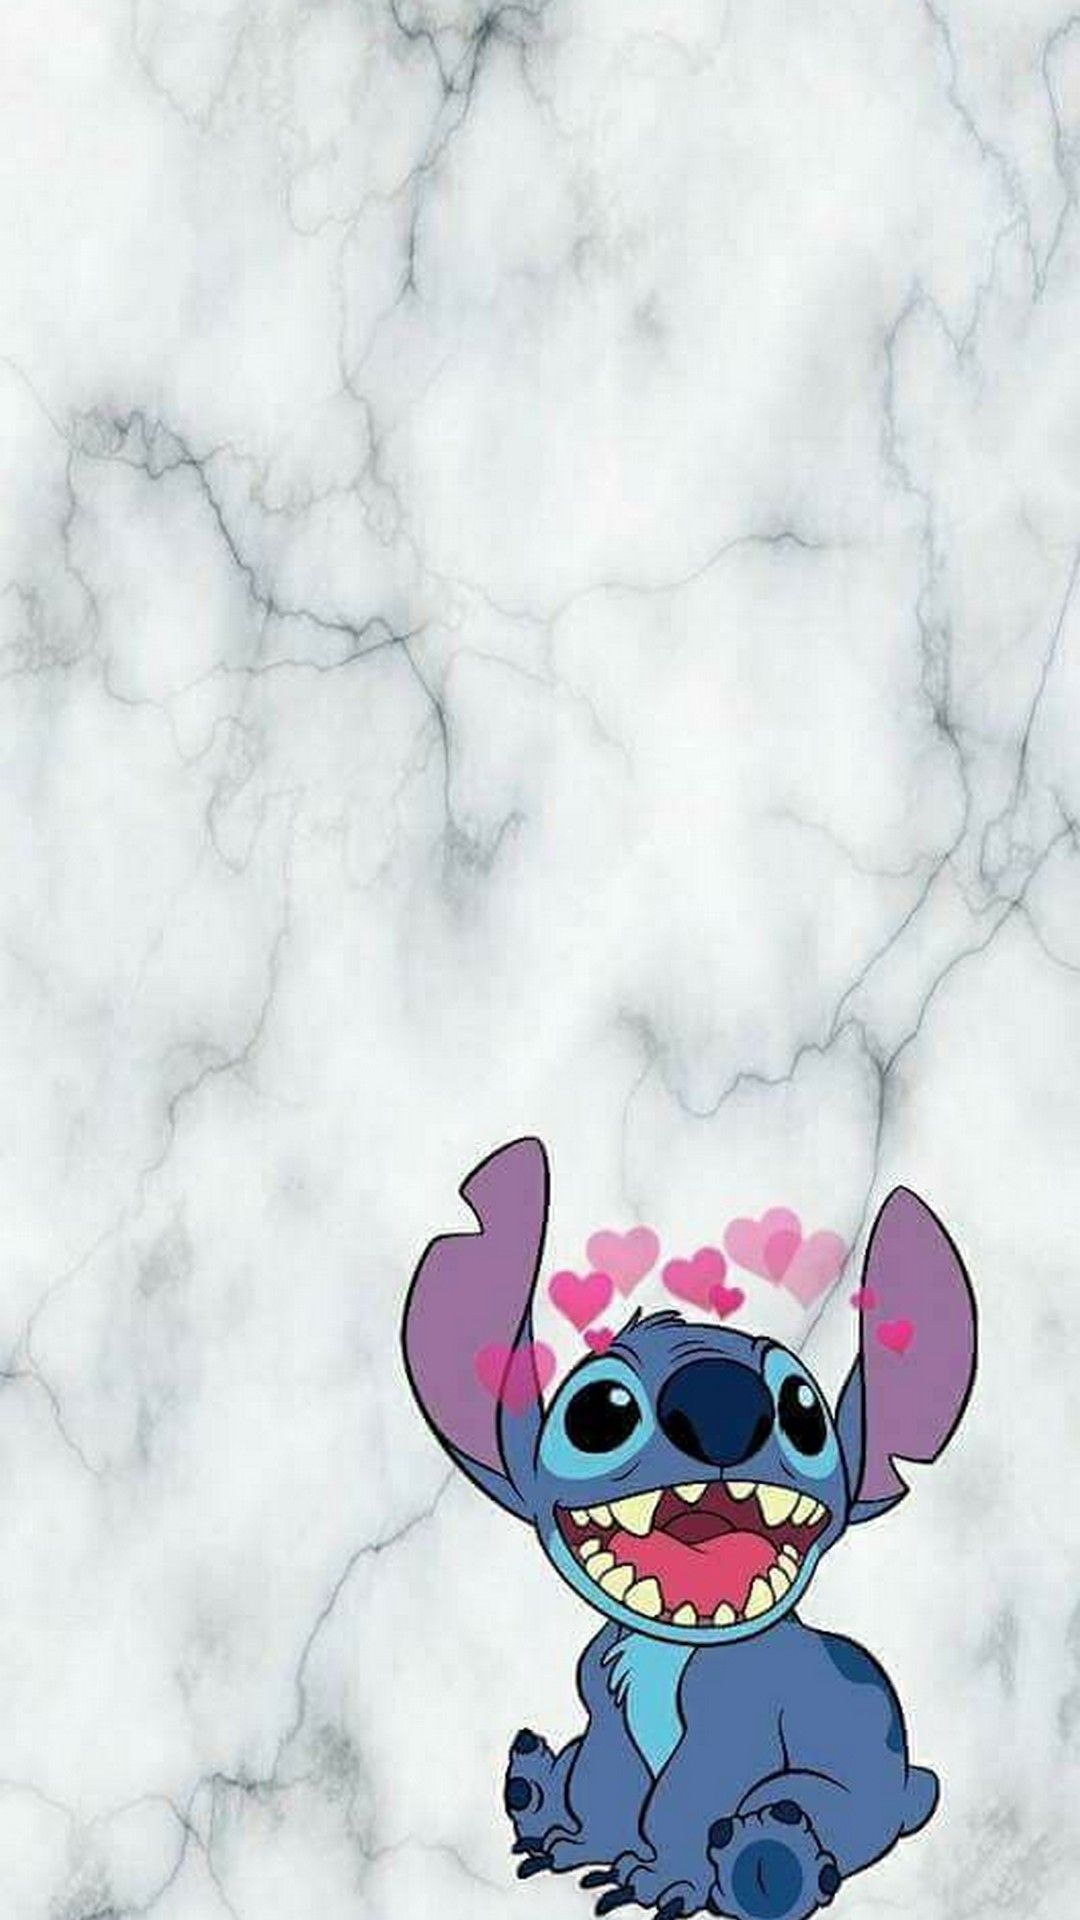 Lilo And Stich Wallpaper Posted By John Johnson